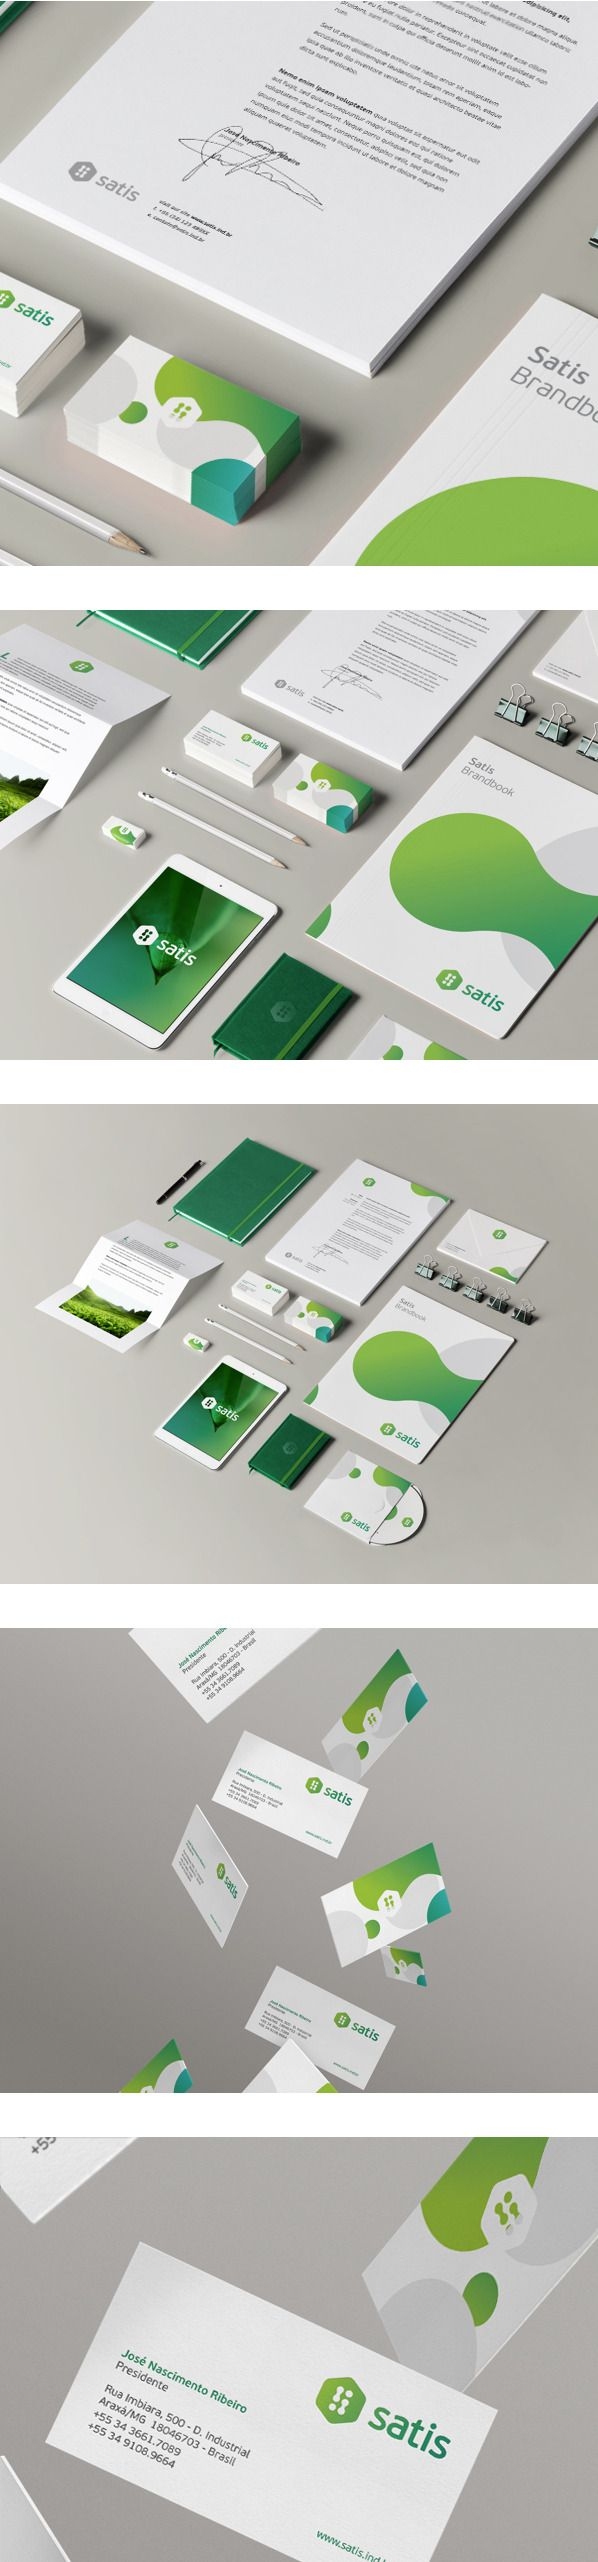 Satis Branding - a nice example of how a brand is consistent in theme but alters slightly across different applications